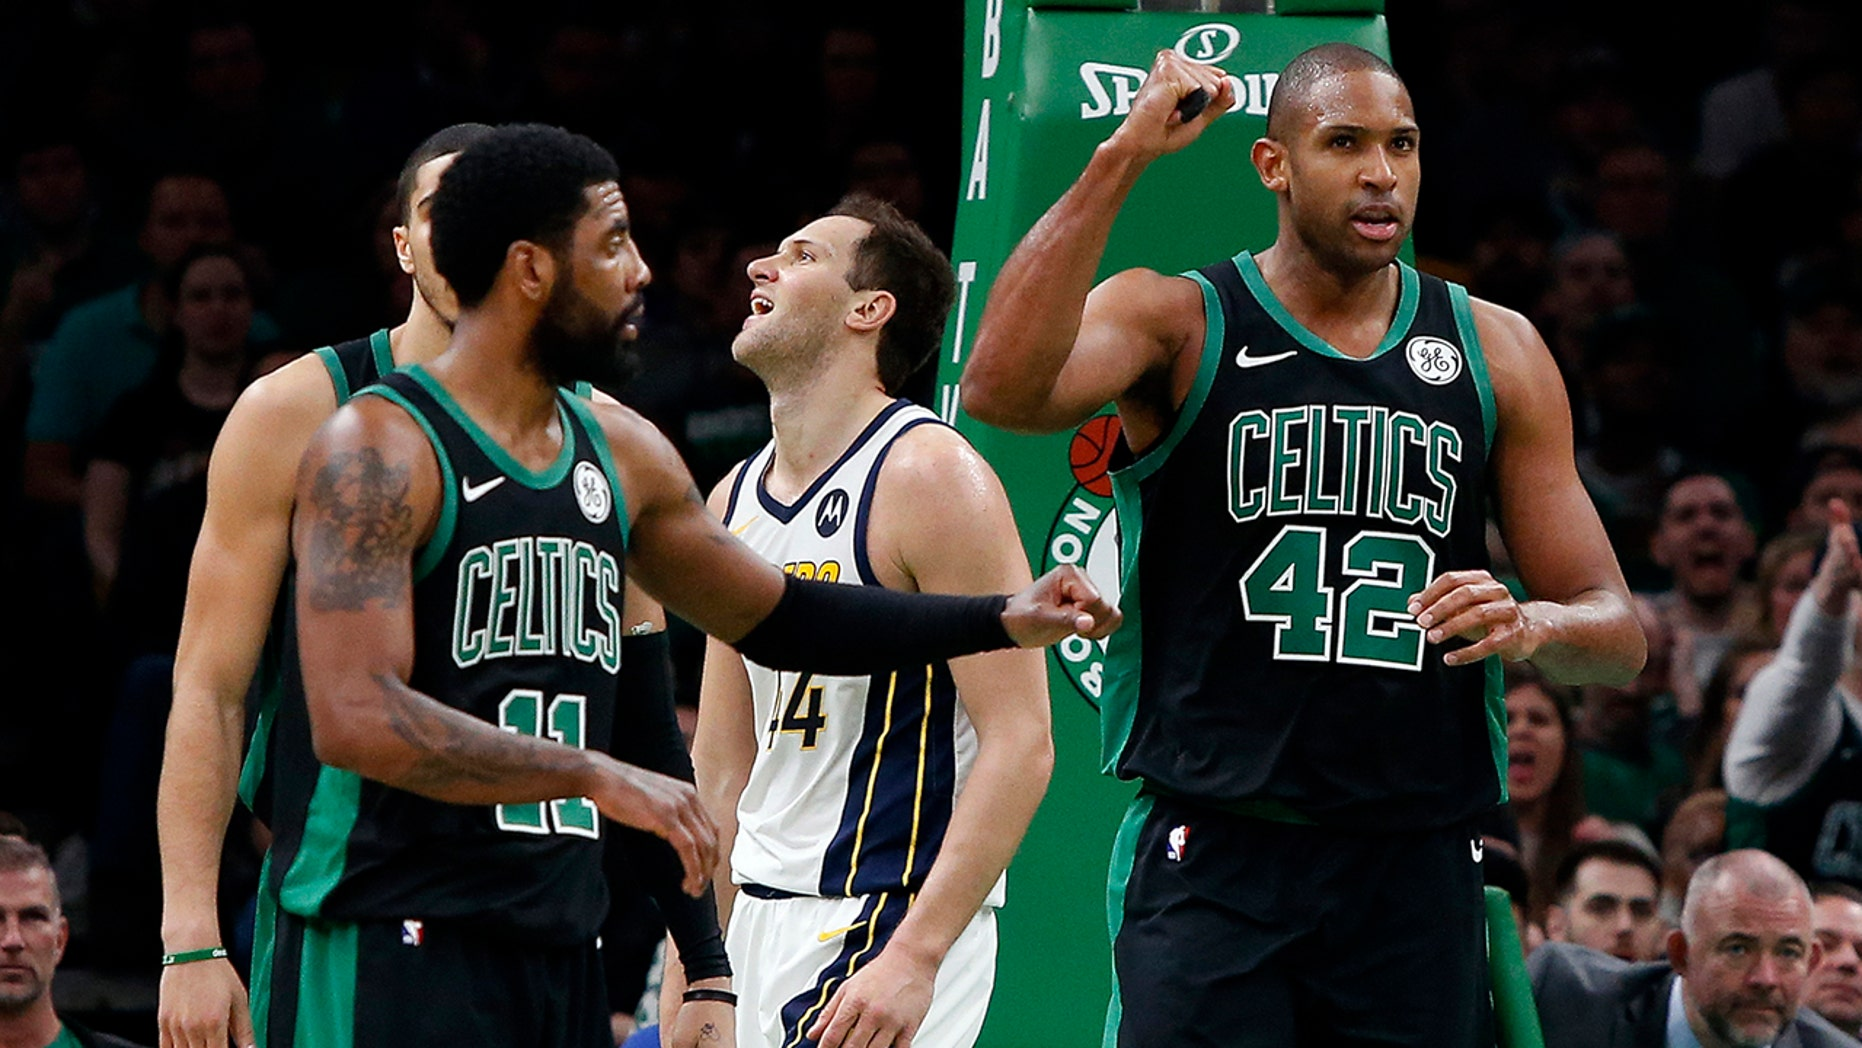 Boston Celtics' Al Horford (42) pumps his fist after being fouled while creation a basket by Indiana Pacers' Bojan Bogdanovic, rear, during a second entertain in Game 1 of a first-round NBA basketball playoff series, Sunday, Apr 14, 2019, in Boston. (AP Photo/Winslow Townson)